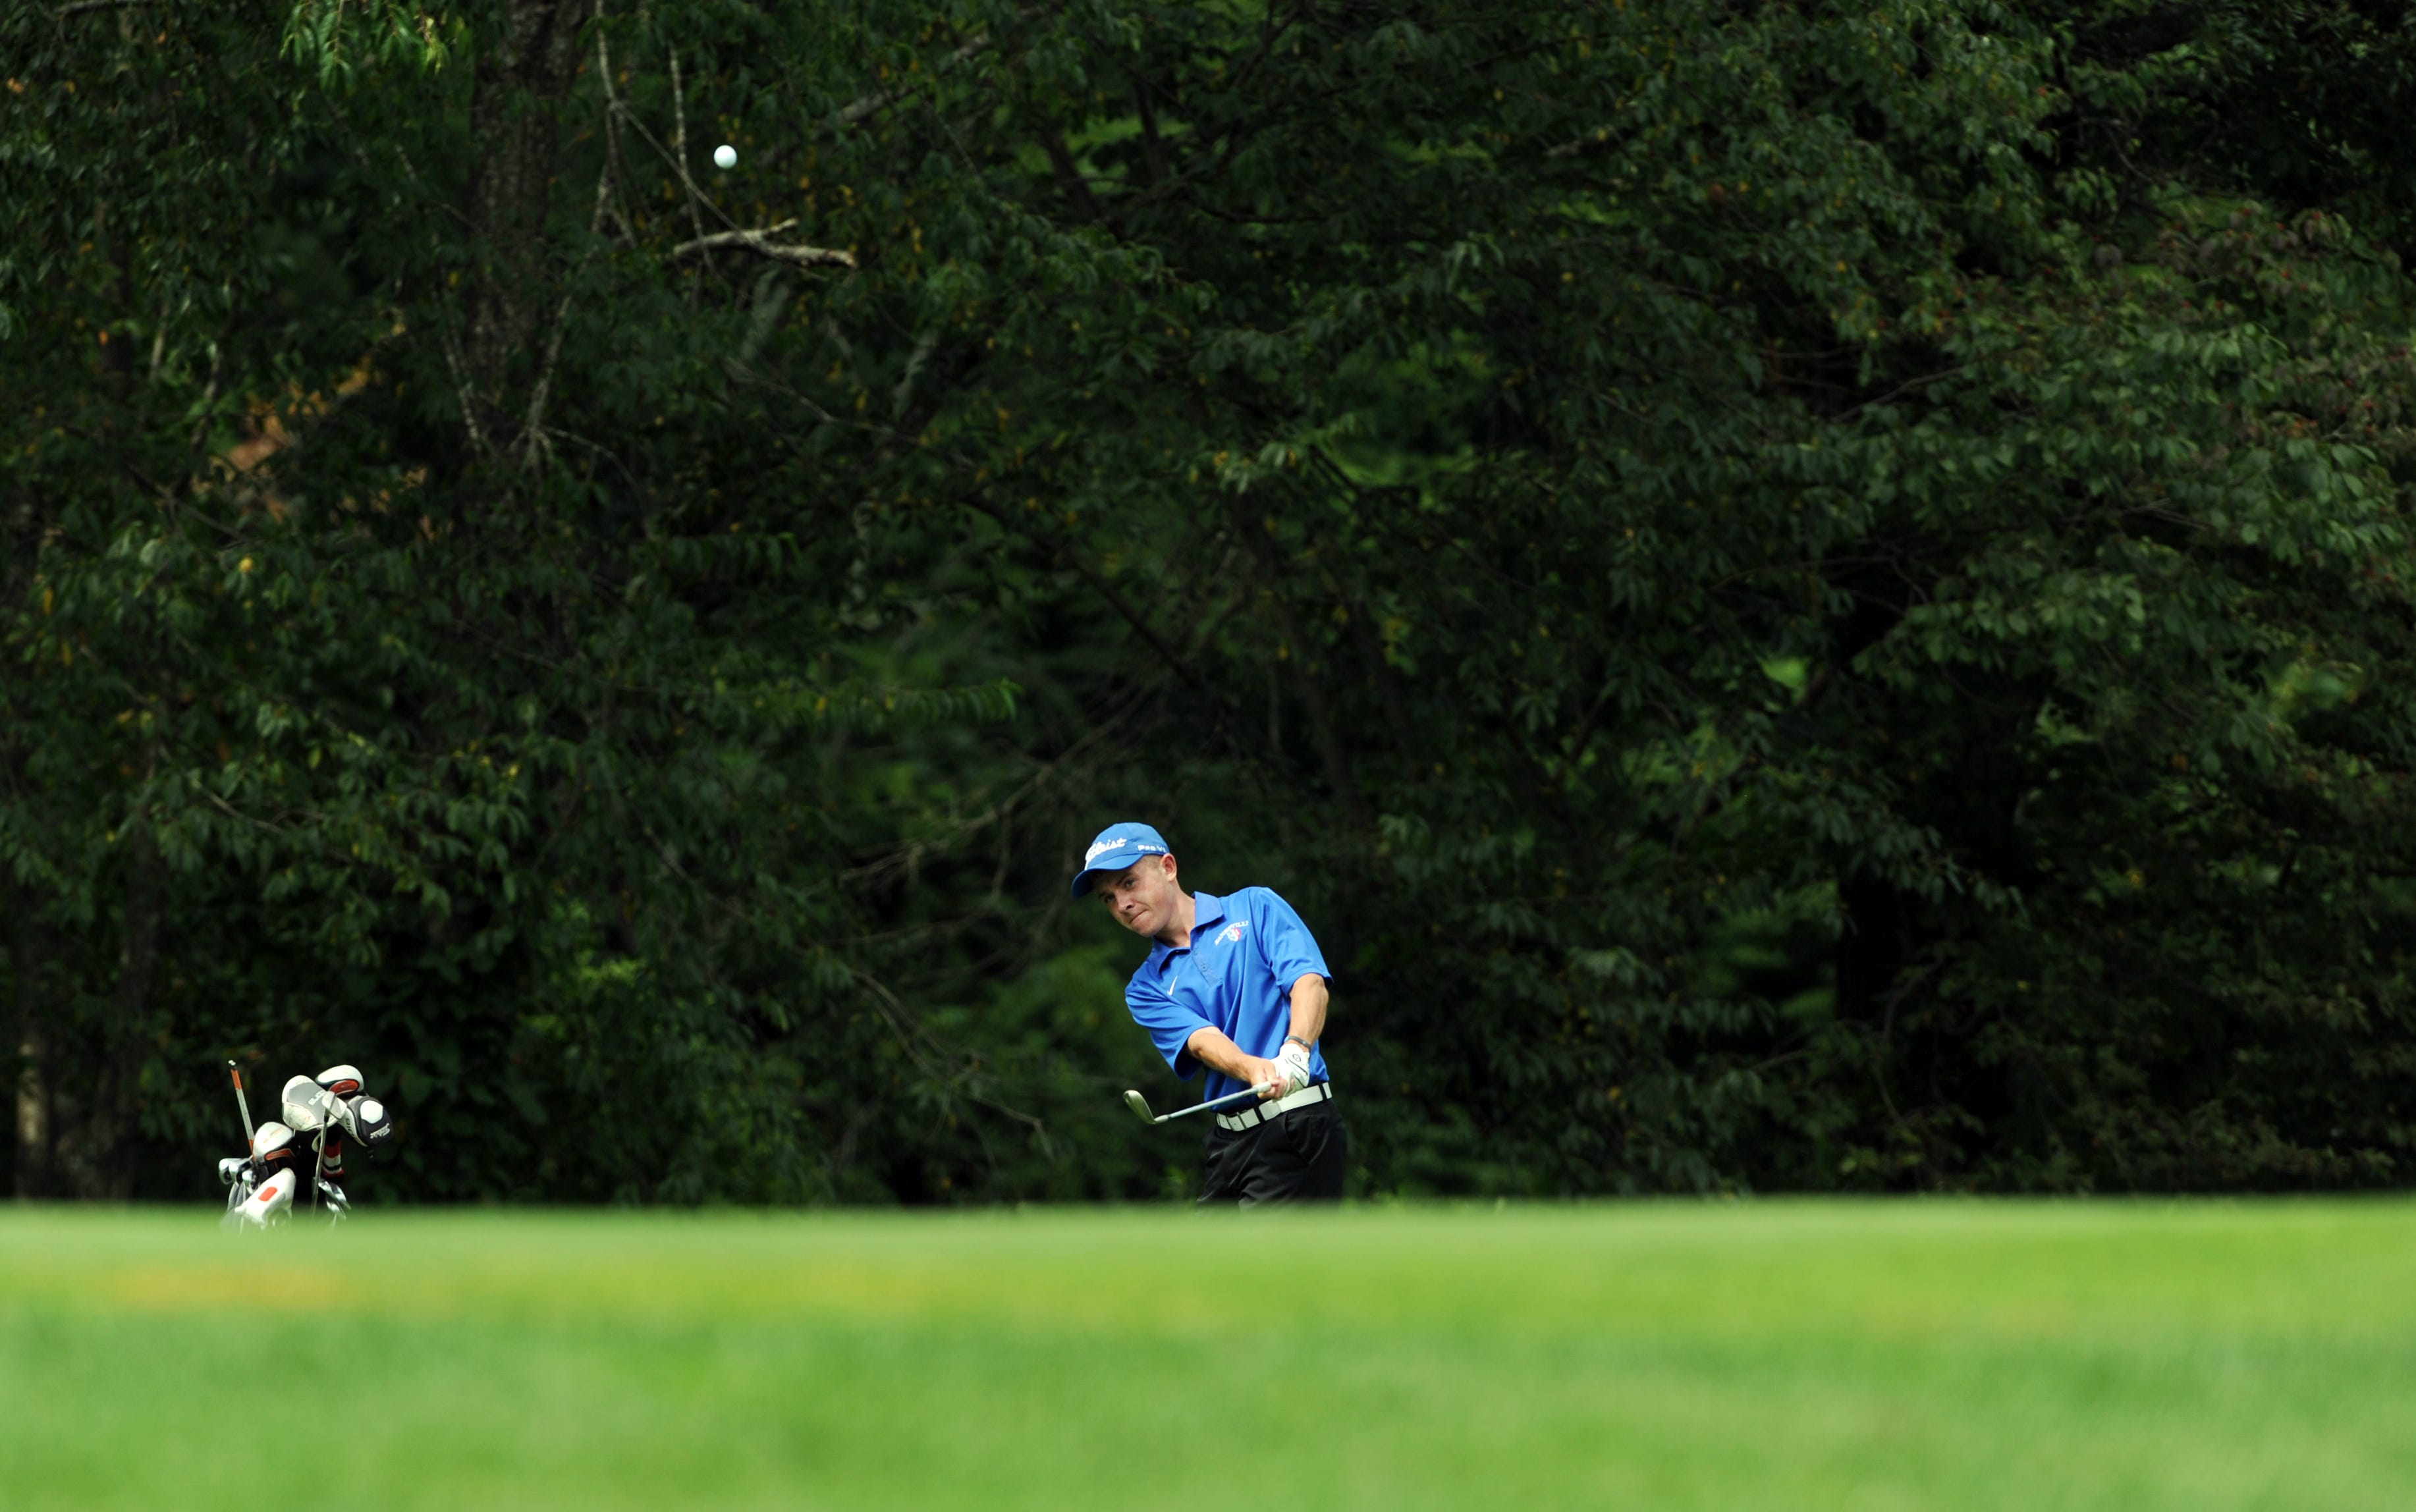 Zanesville junior Harrison Hayes chips onto the 17th green Monday at Zanesville Country Club during the first round of the East Central Ohio League tournament. Hayes and teammate J.J. Burns carded 81s to lead the Blue Devils.